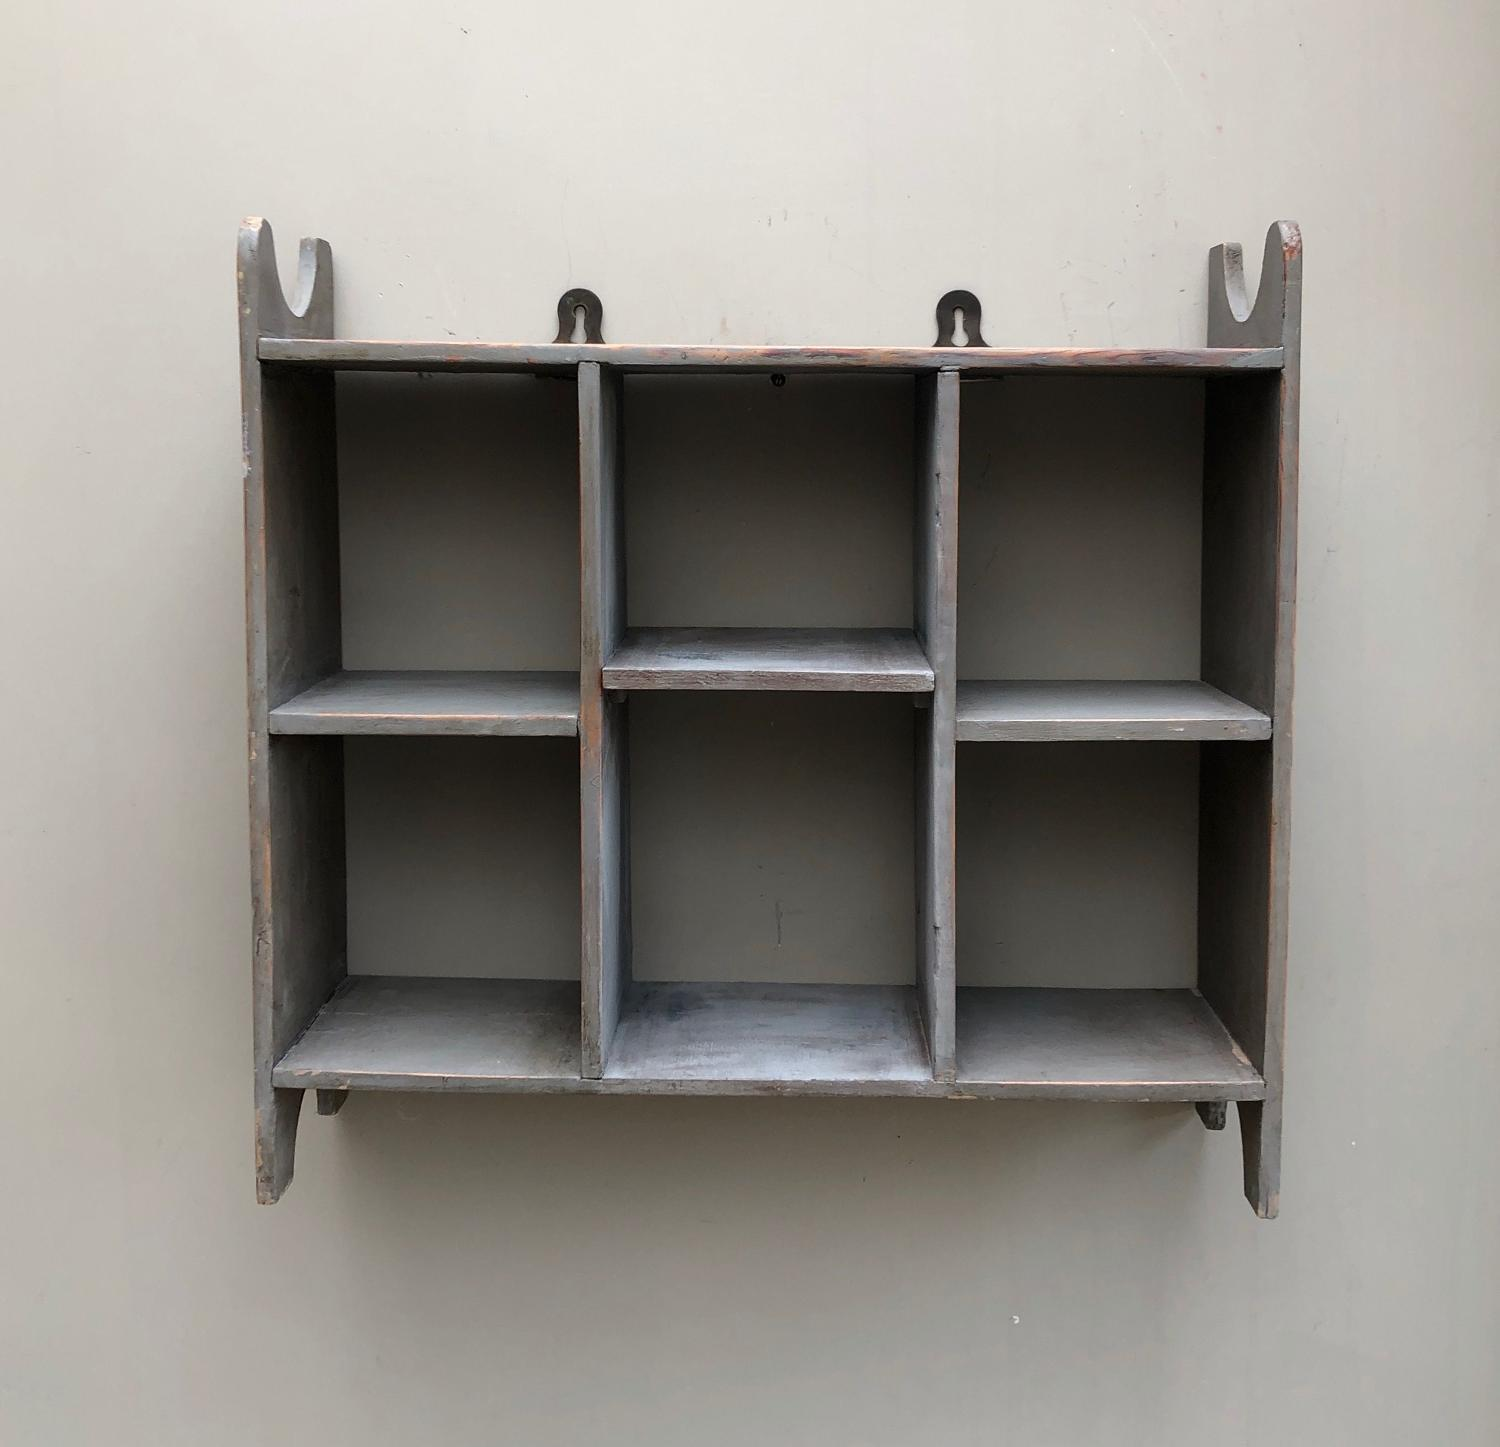 Victorian Pine Pigeon Hole Shelves - Later Painted